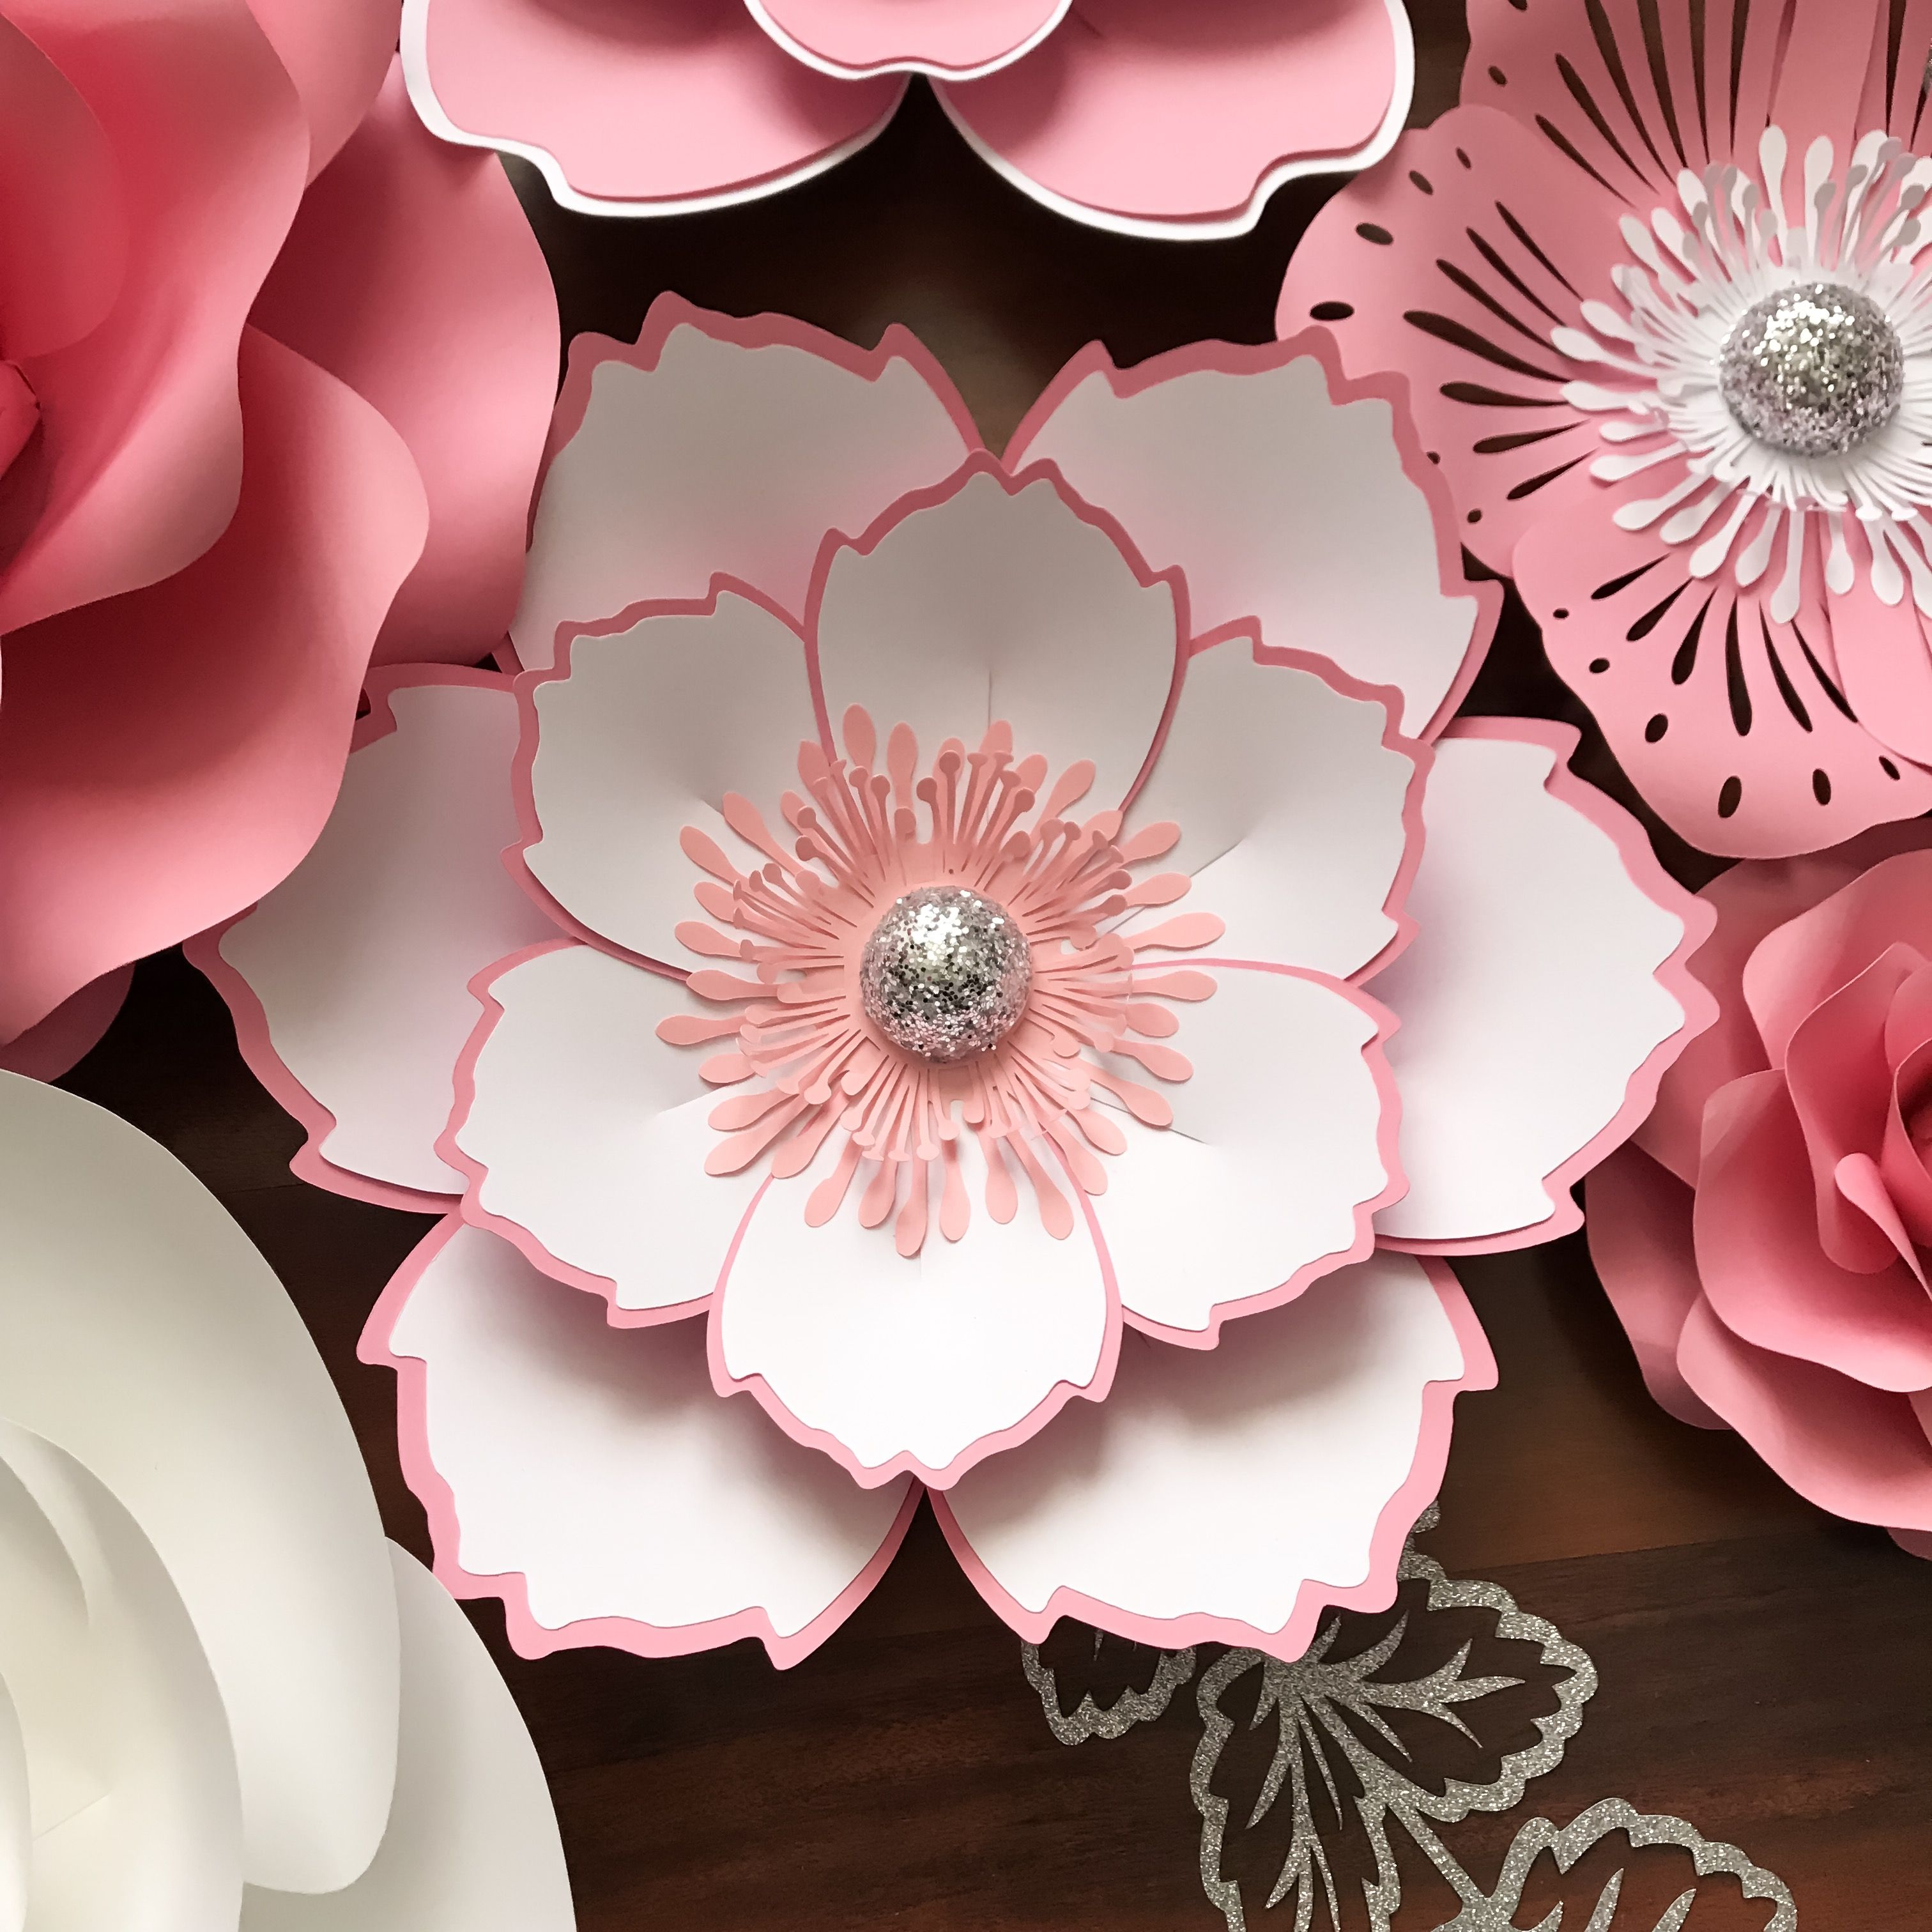 Flower images 2018 how to make small paper flowers step by step how to make small paper flowers step by step the flowers are very beautiful here we provide a collections of various pictures of beautiful flowers mightylinksfo